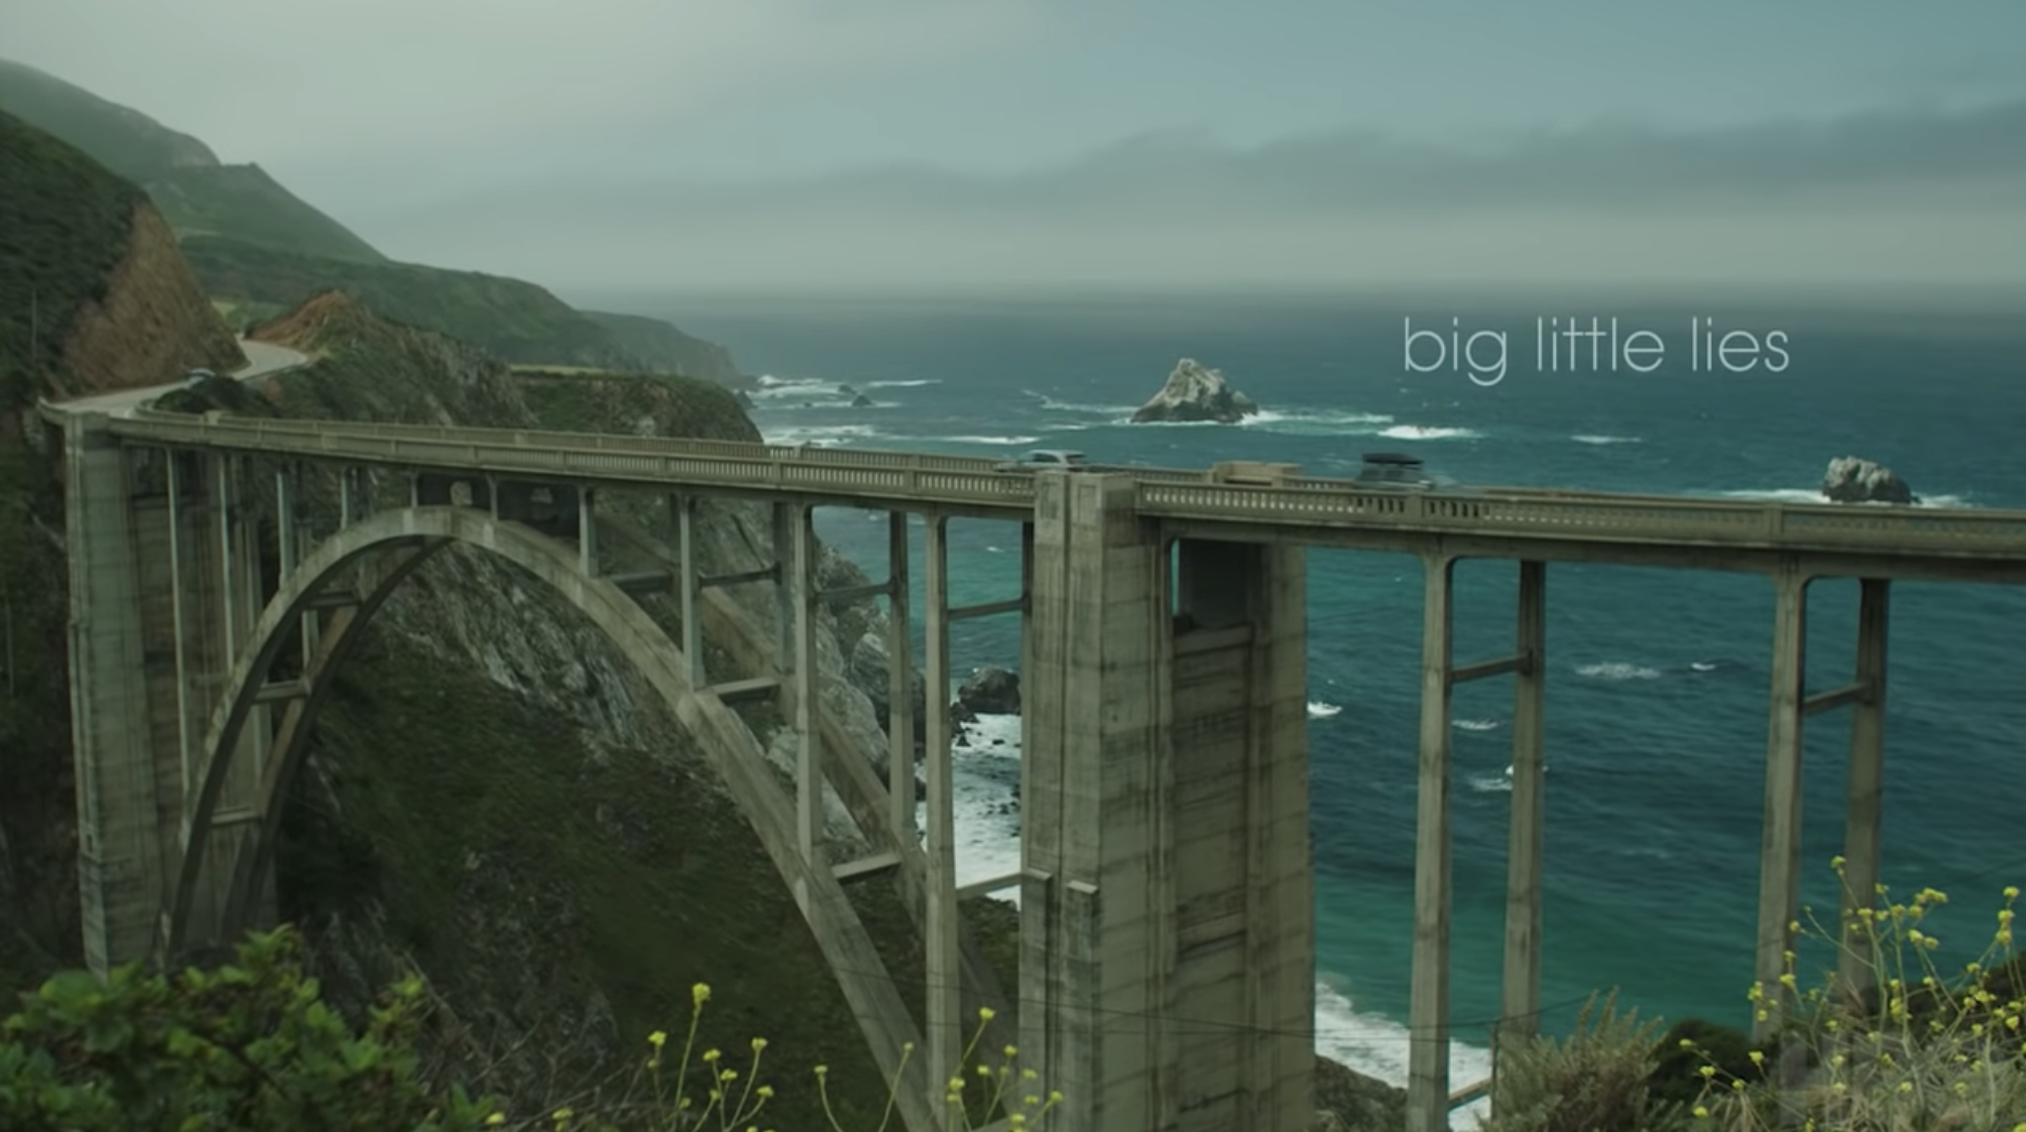 """Big Little Lies"" title card — which is the title of the show over a bridge in Monterey, CA."